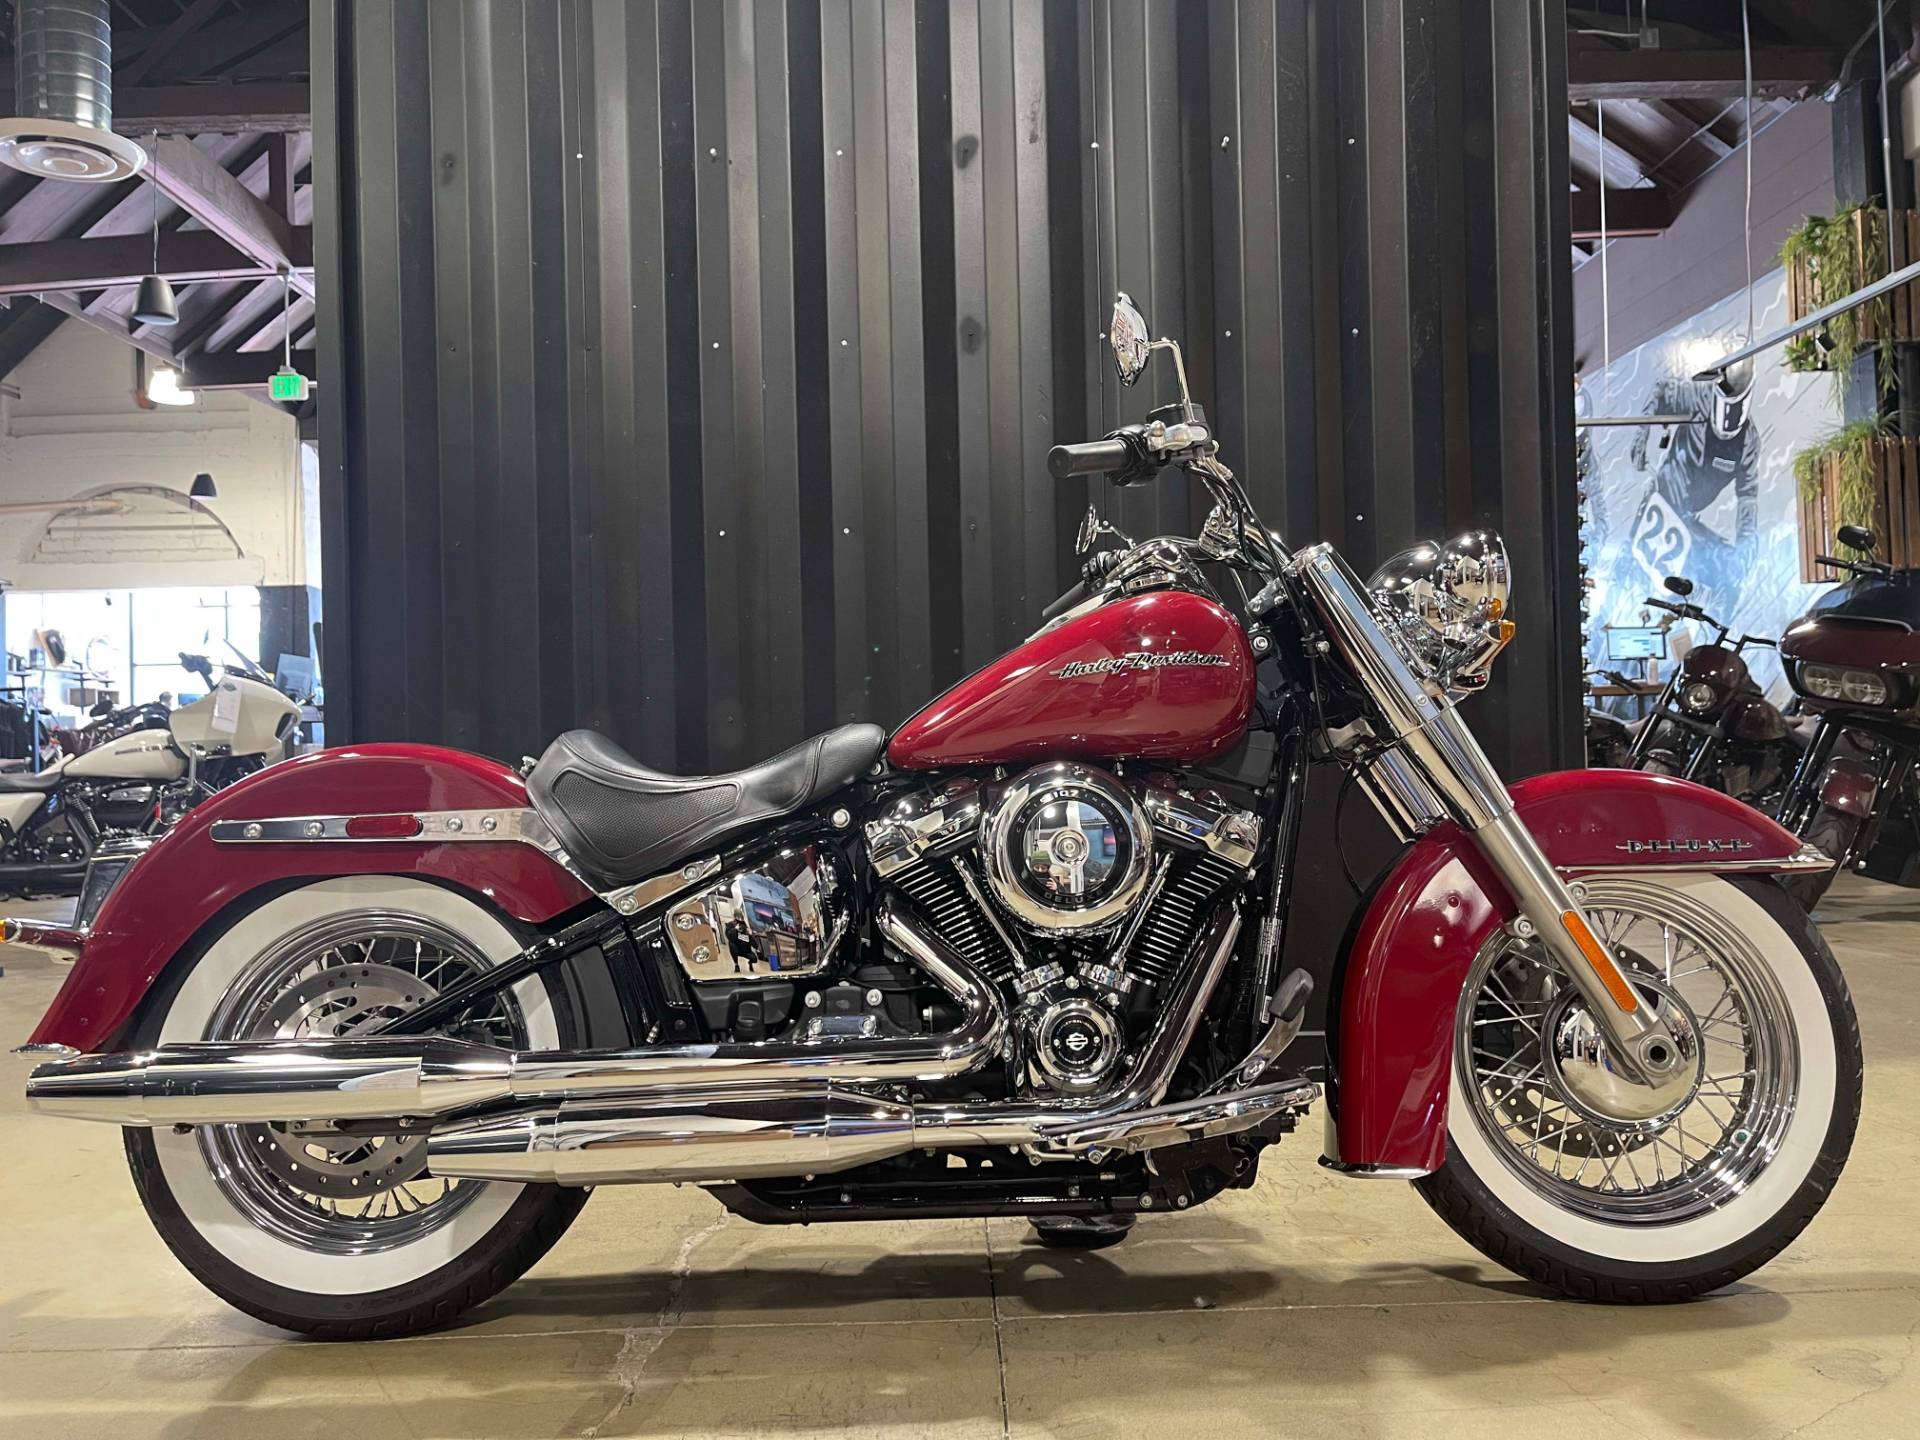 2020 Harley-Davidson Deluxe in San Francisco, California - Photo 1